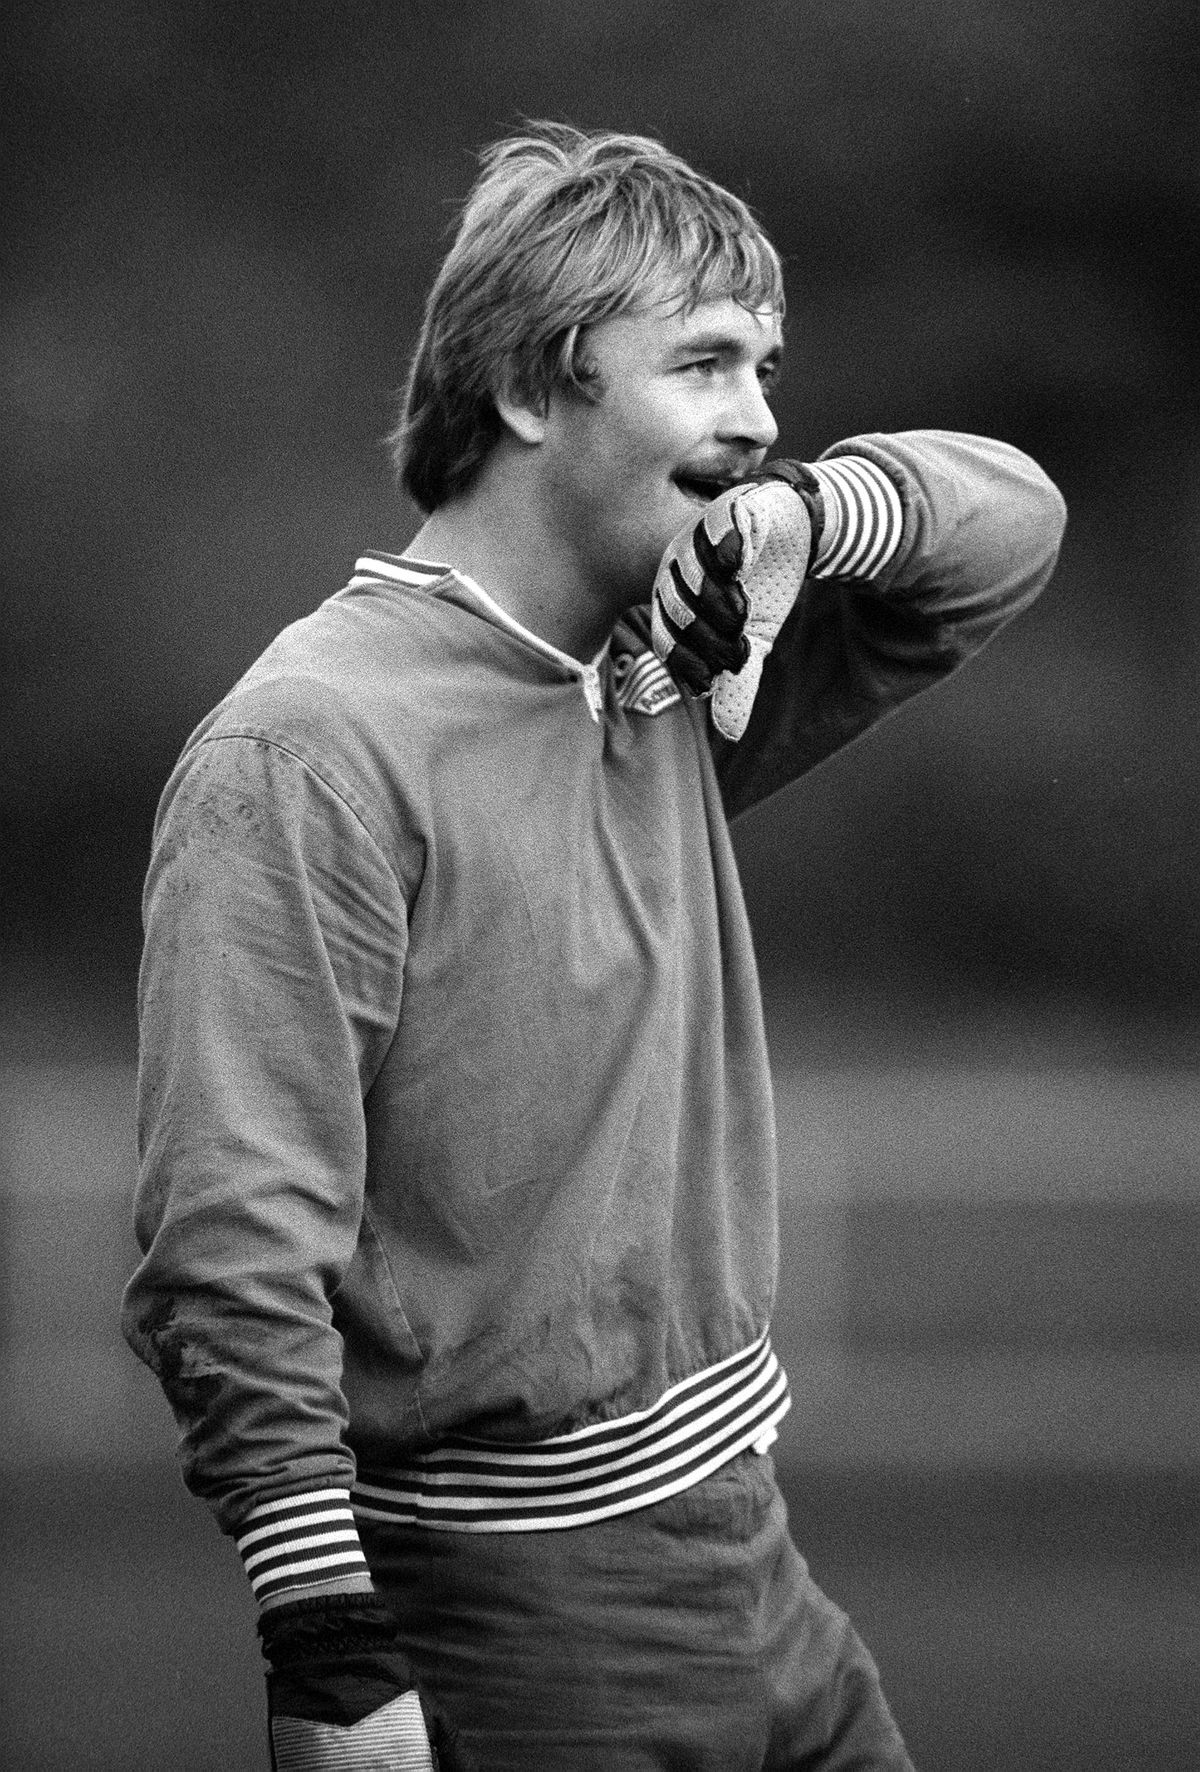 Football. Under 21s International. 12th October 1982. England v West Germany, Second Leg. England goalkeeper Ian Hesford during a training session.